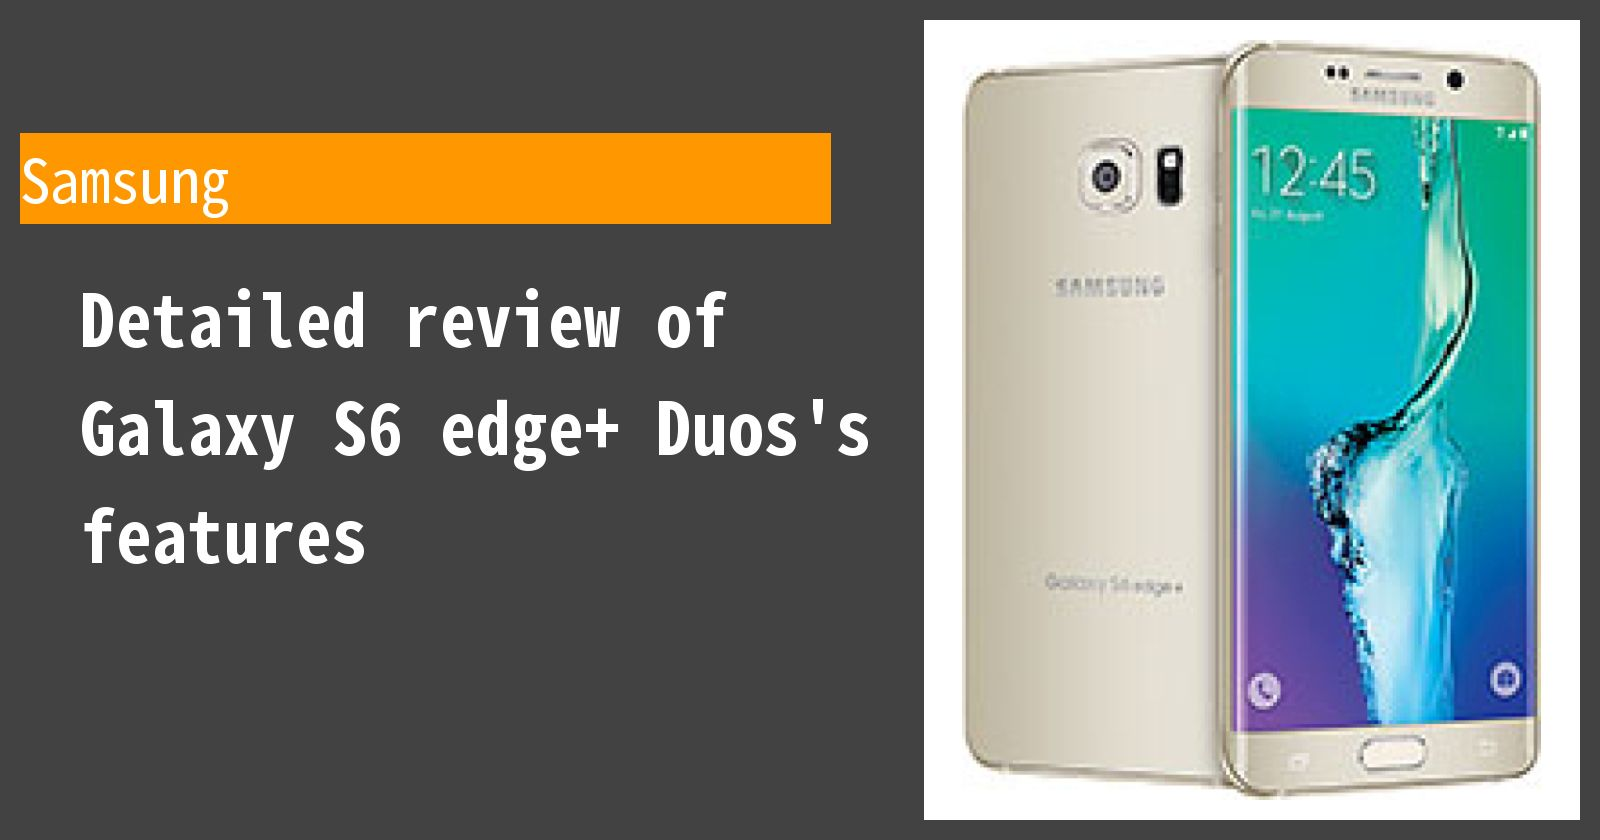 Detailed review of Galaxy S6 edge+ Duos's features